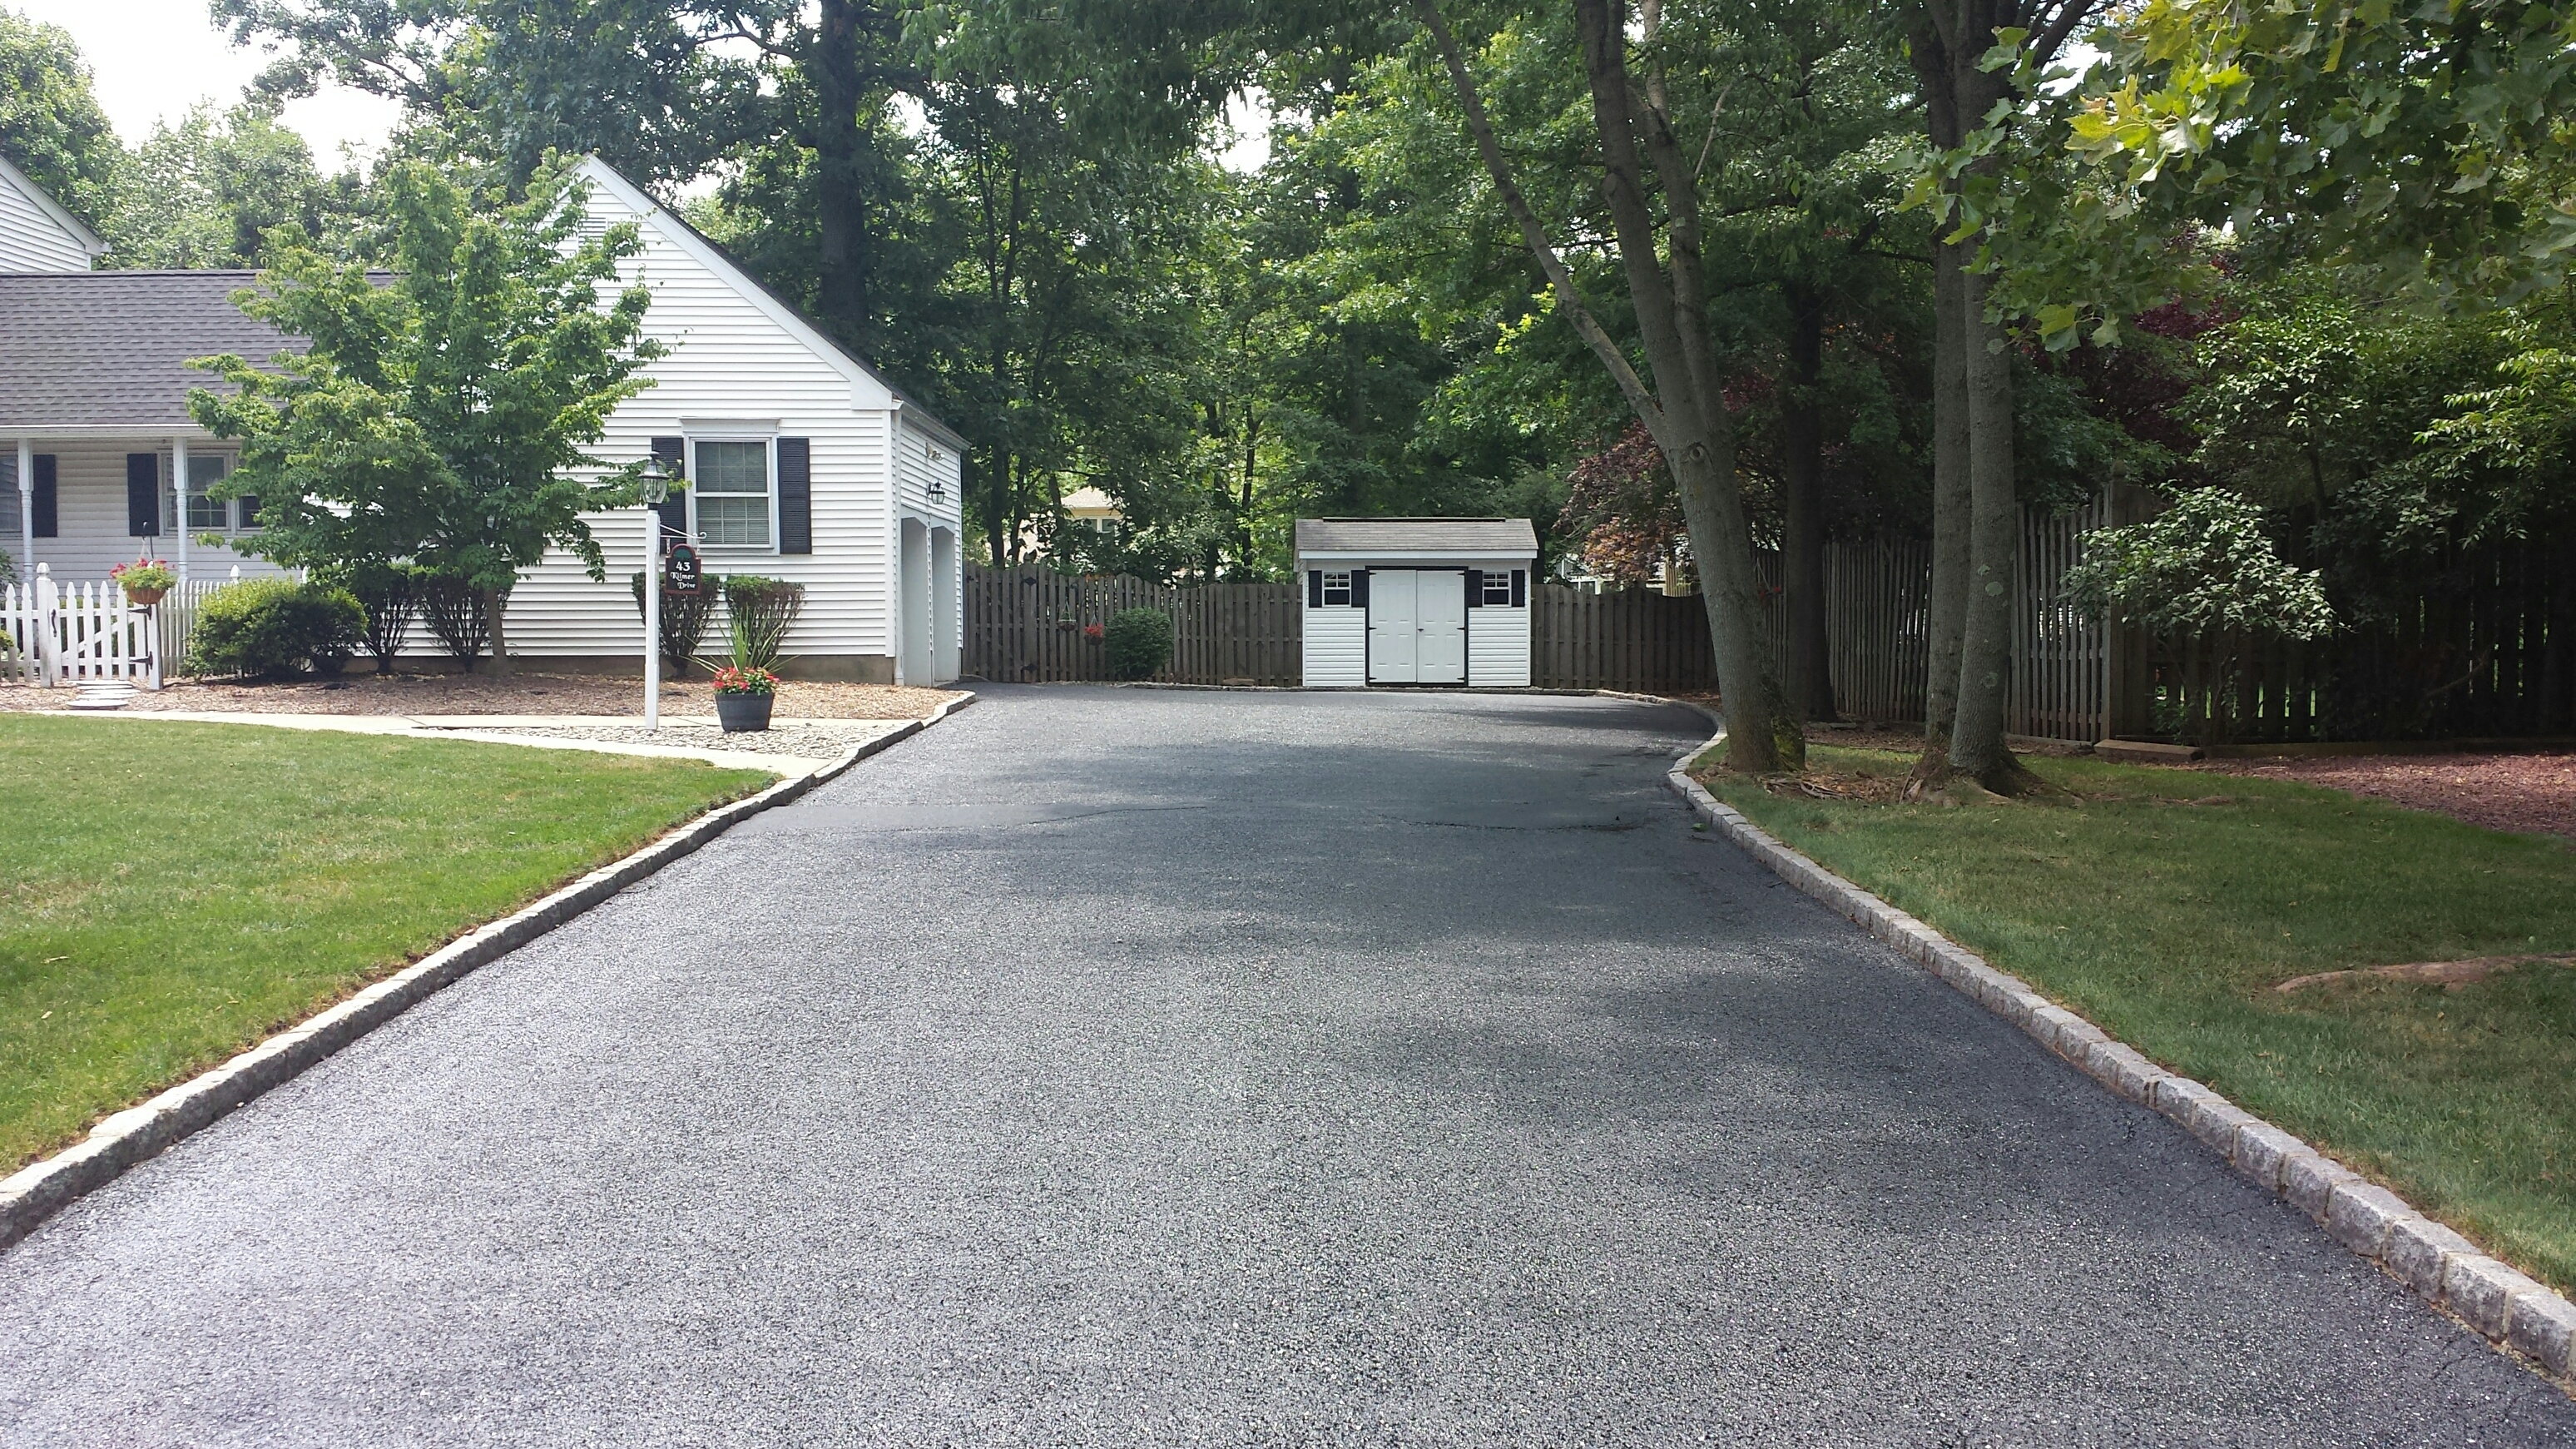 2019 Asphalt Paving Costs - Install, Resurface, Replace Prices